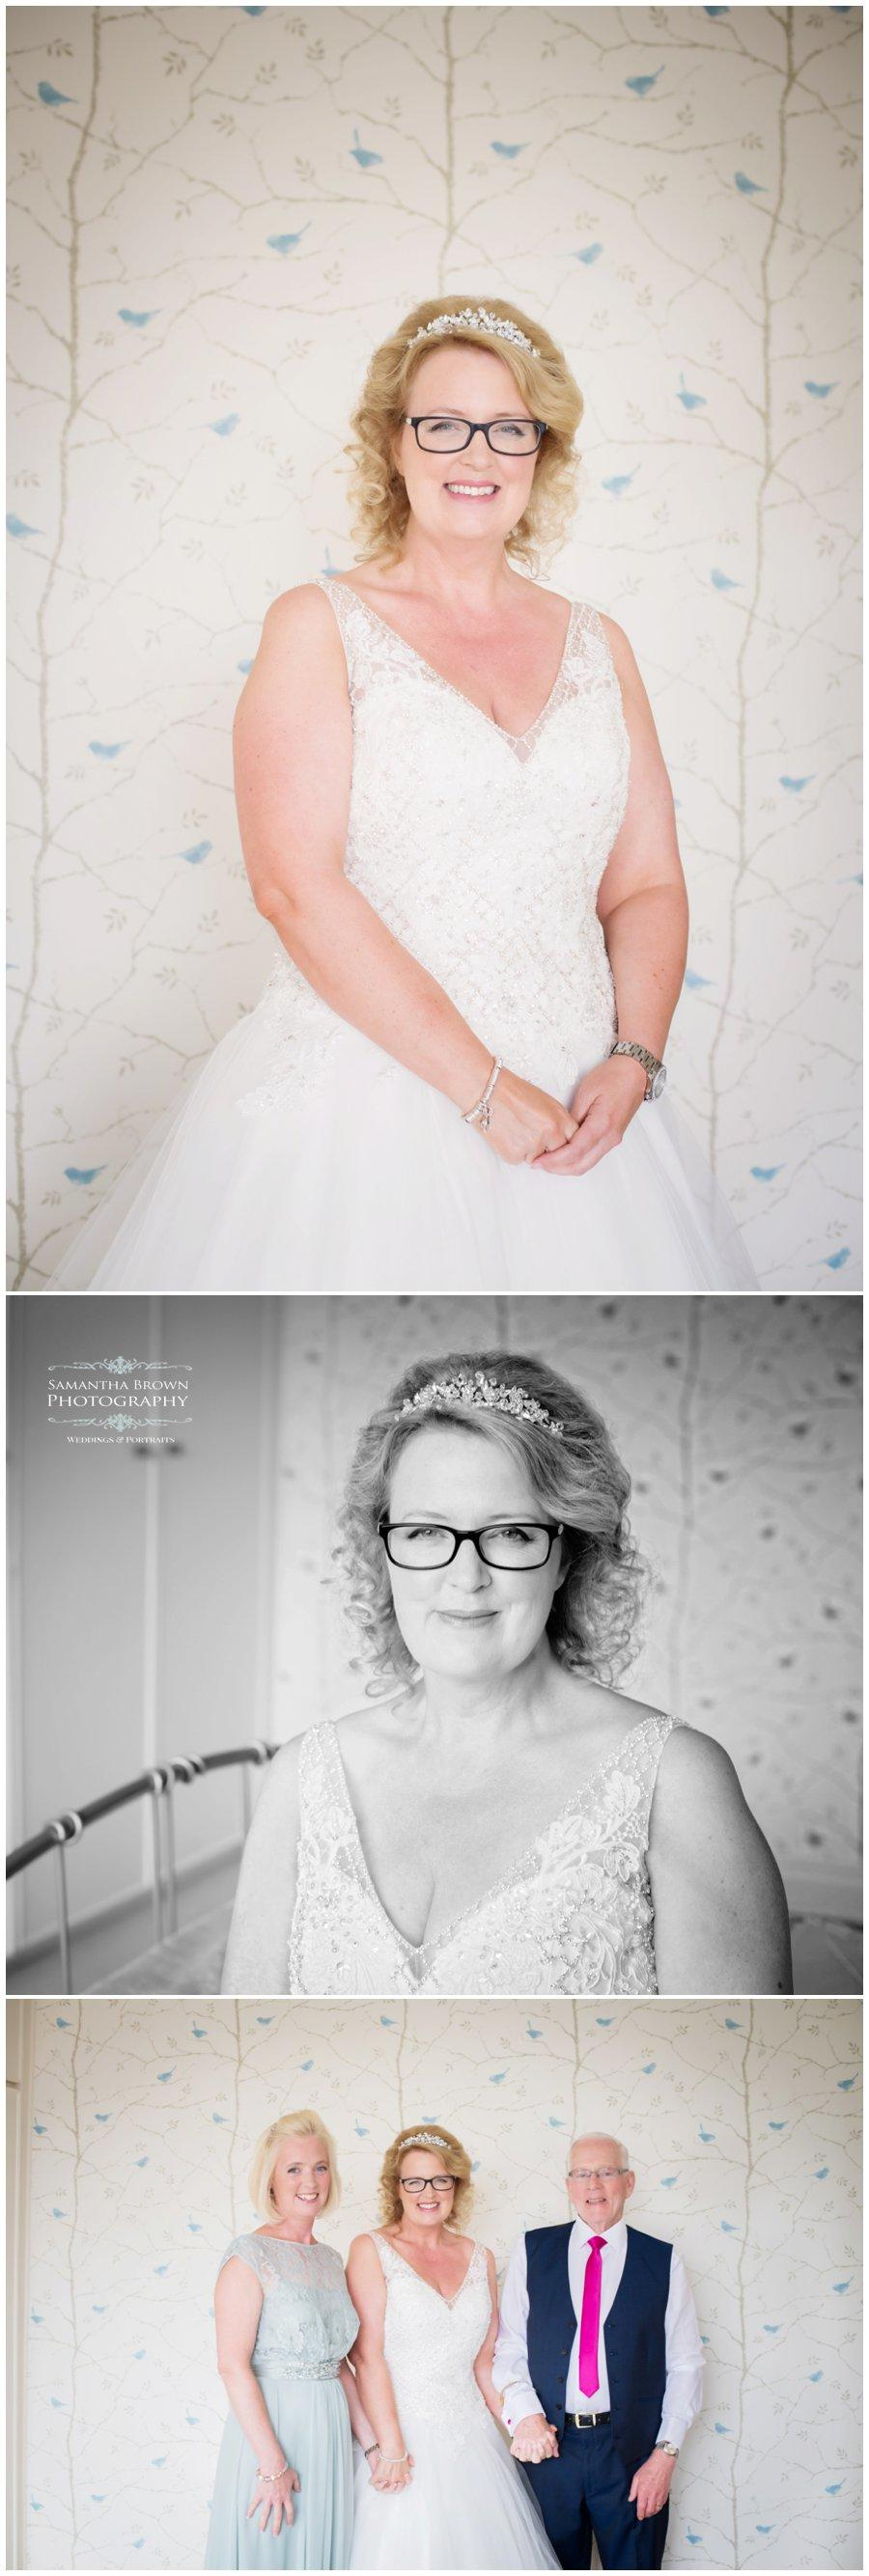 wedding-photography-liverpool-by-samantha-brown_0127